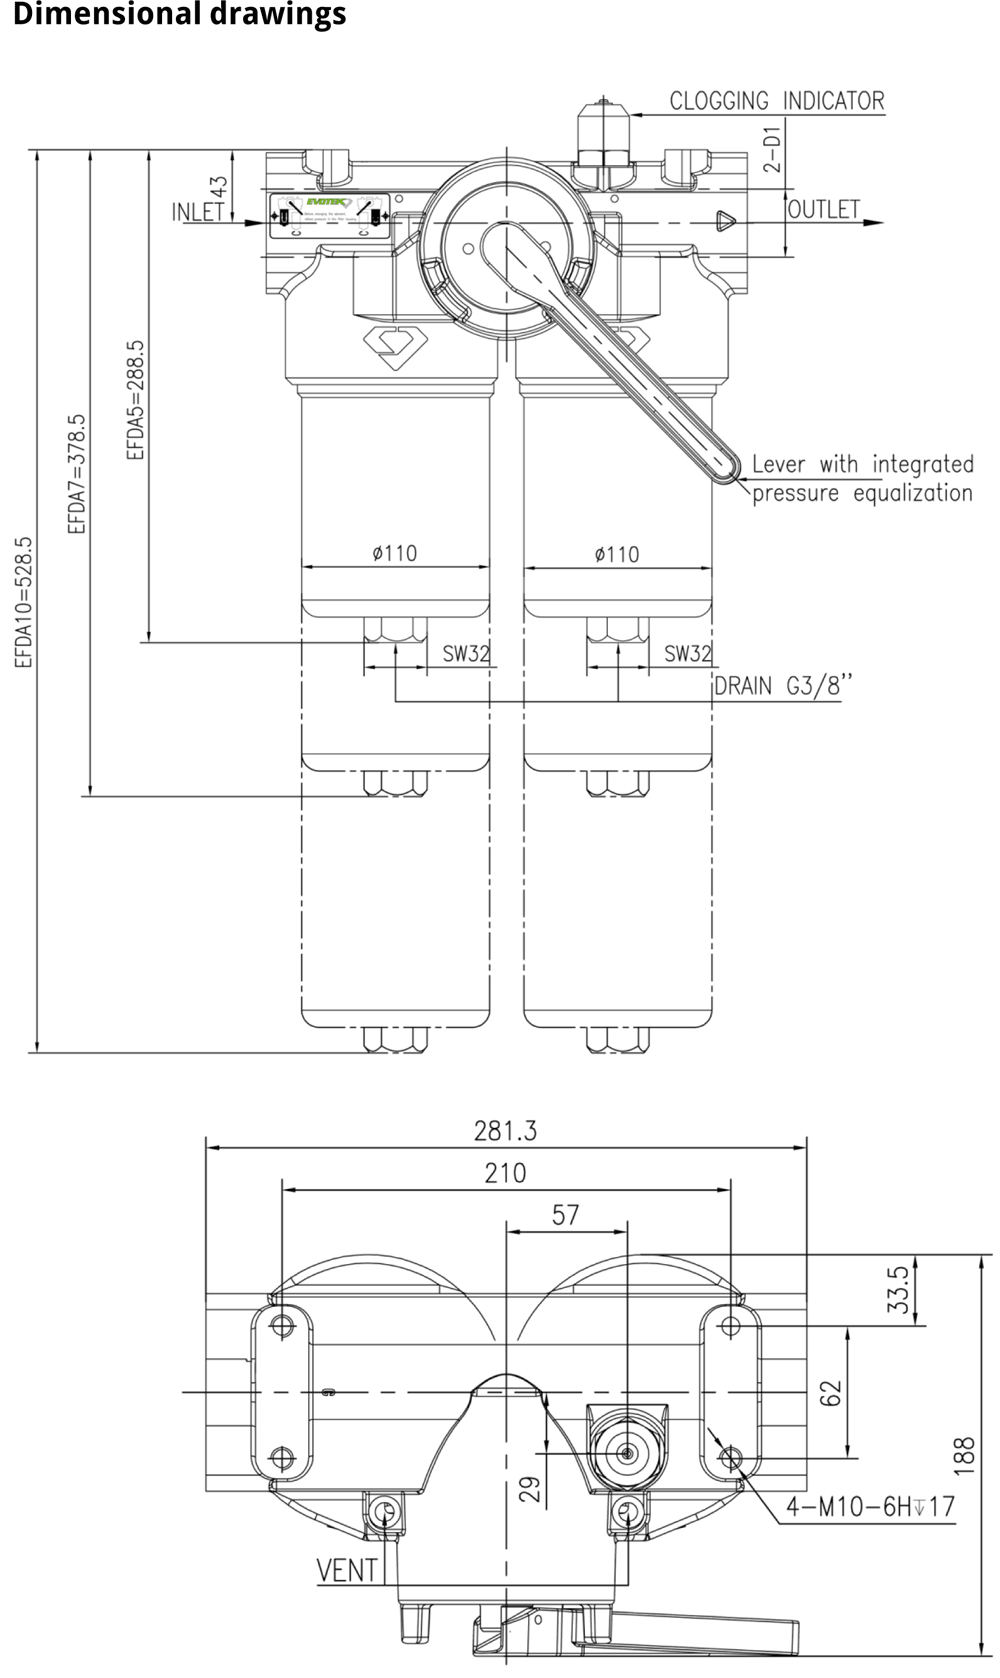 Evotek EFDA schematic drawing